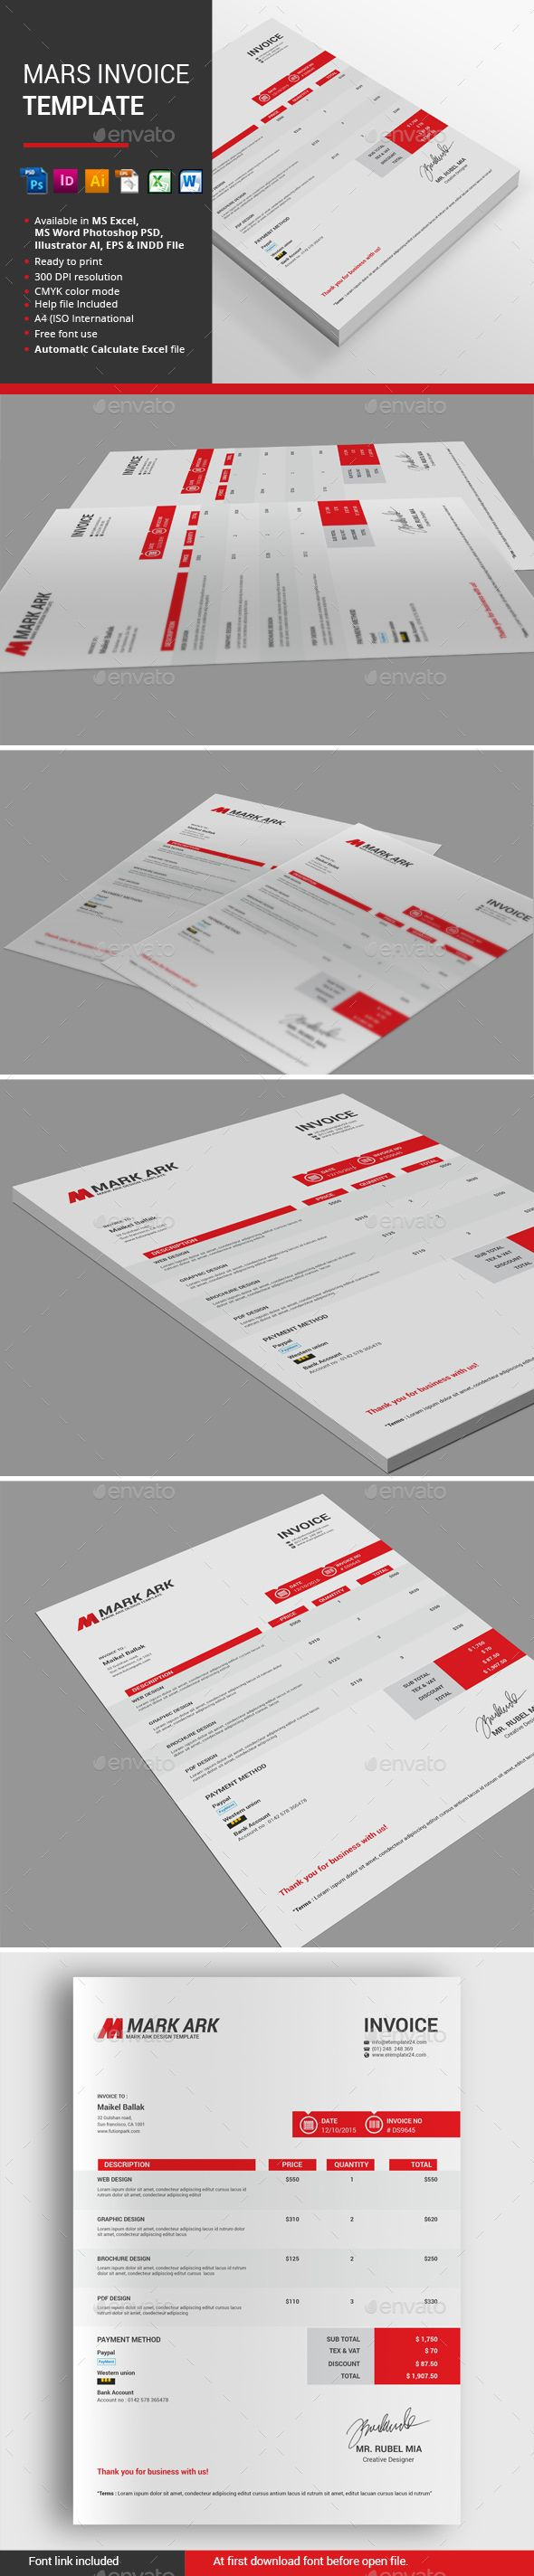 Mars Invoice Template by alimran24 INVOICE BUNDLE